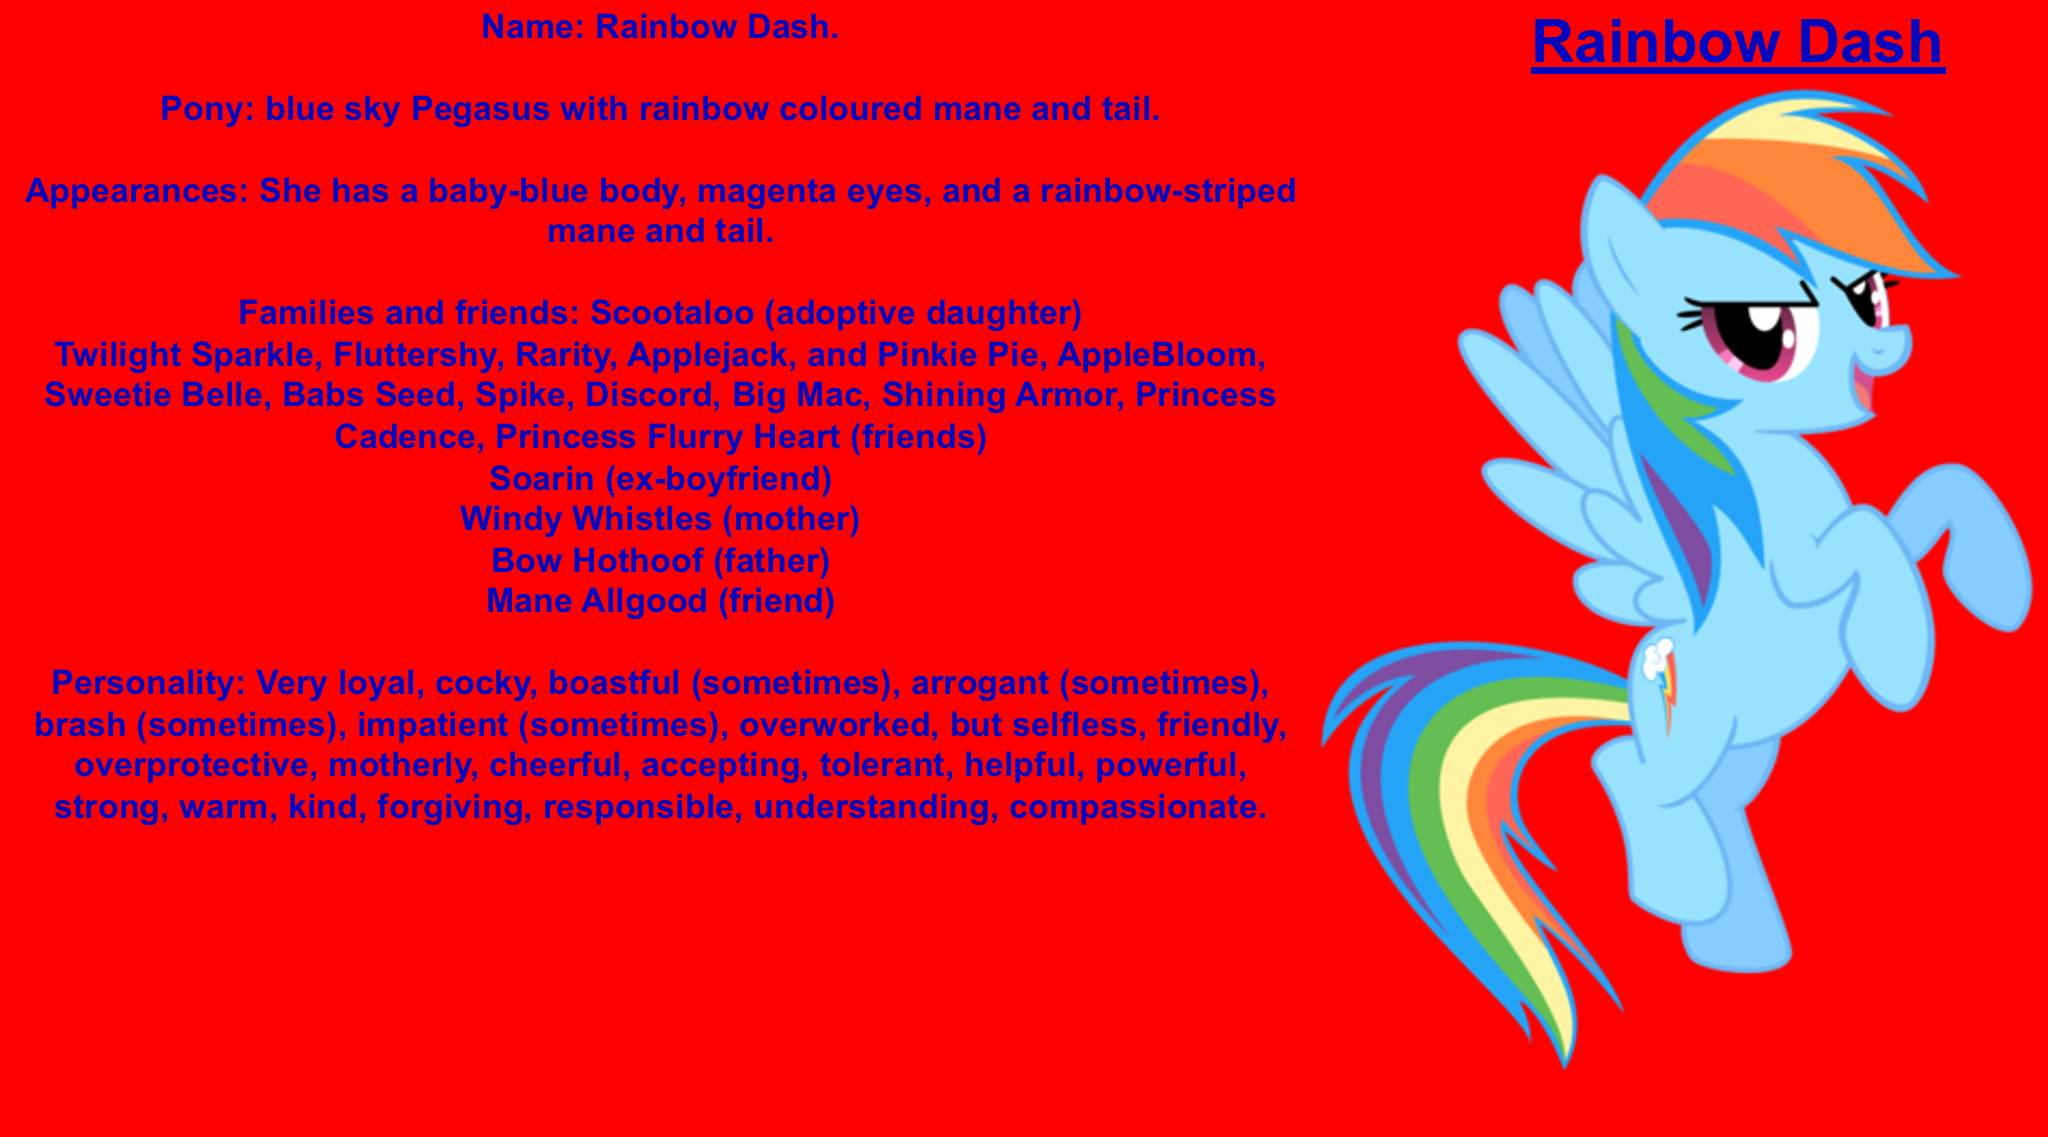 Rainbow Dash Wiki By Darkmoonanimation On Deviantart One of the favorite sections on our site is this collection of creative and often hilarious charts of each personality type. rainbow dash wiki by